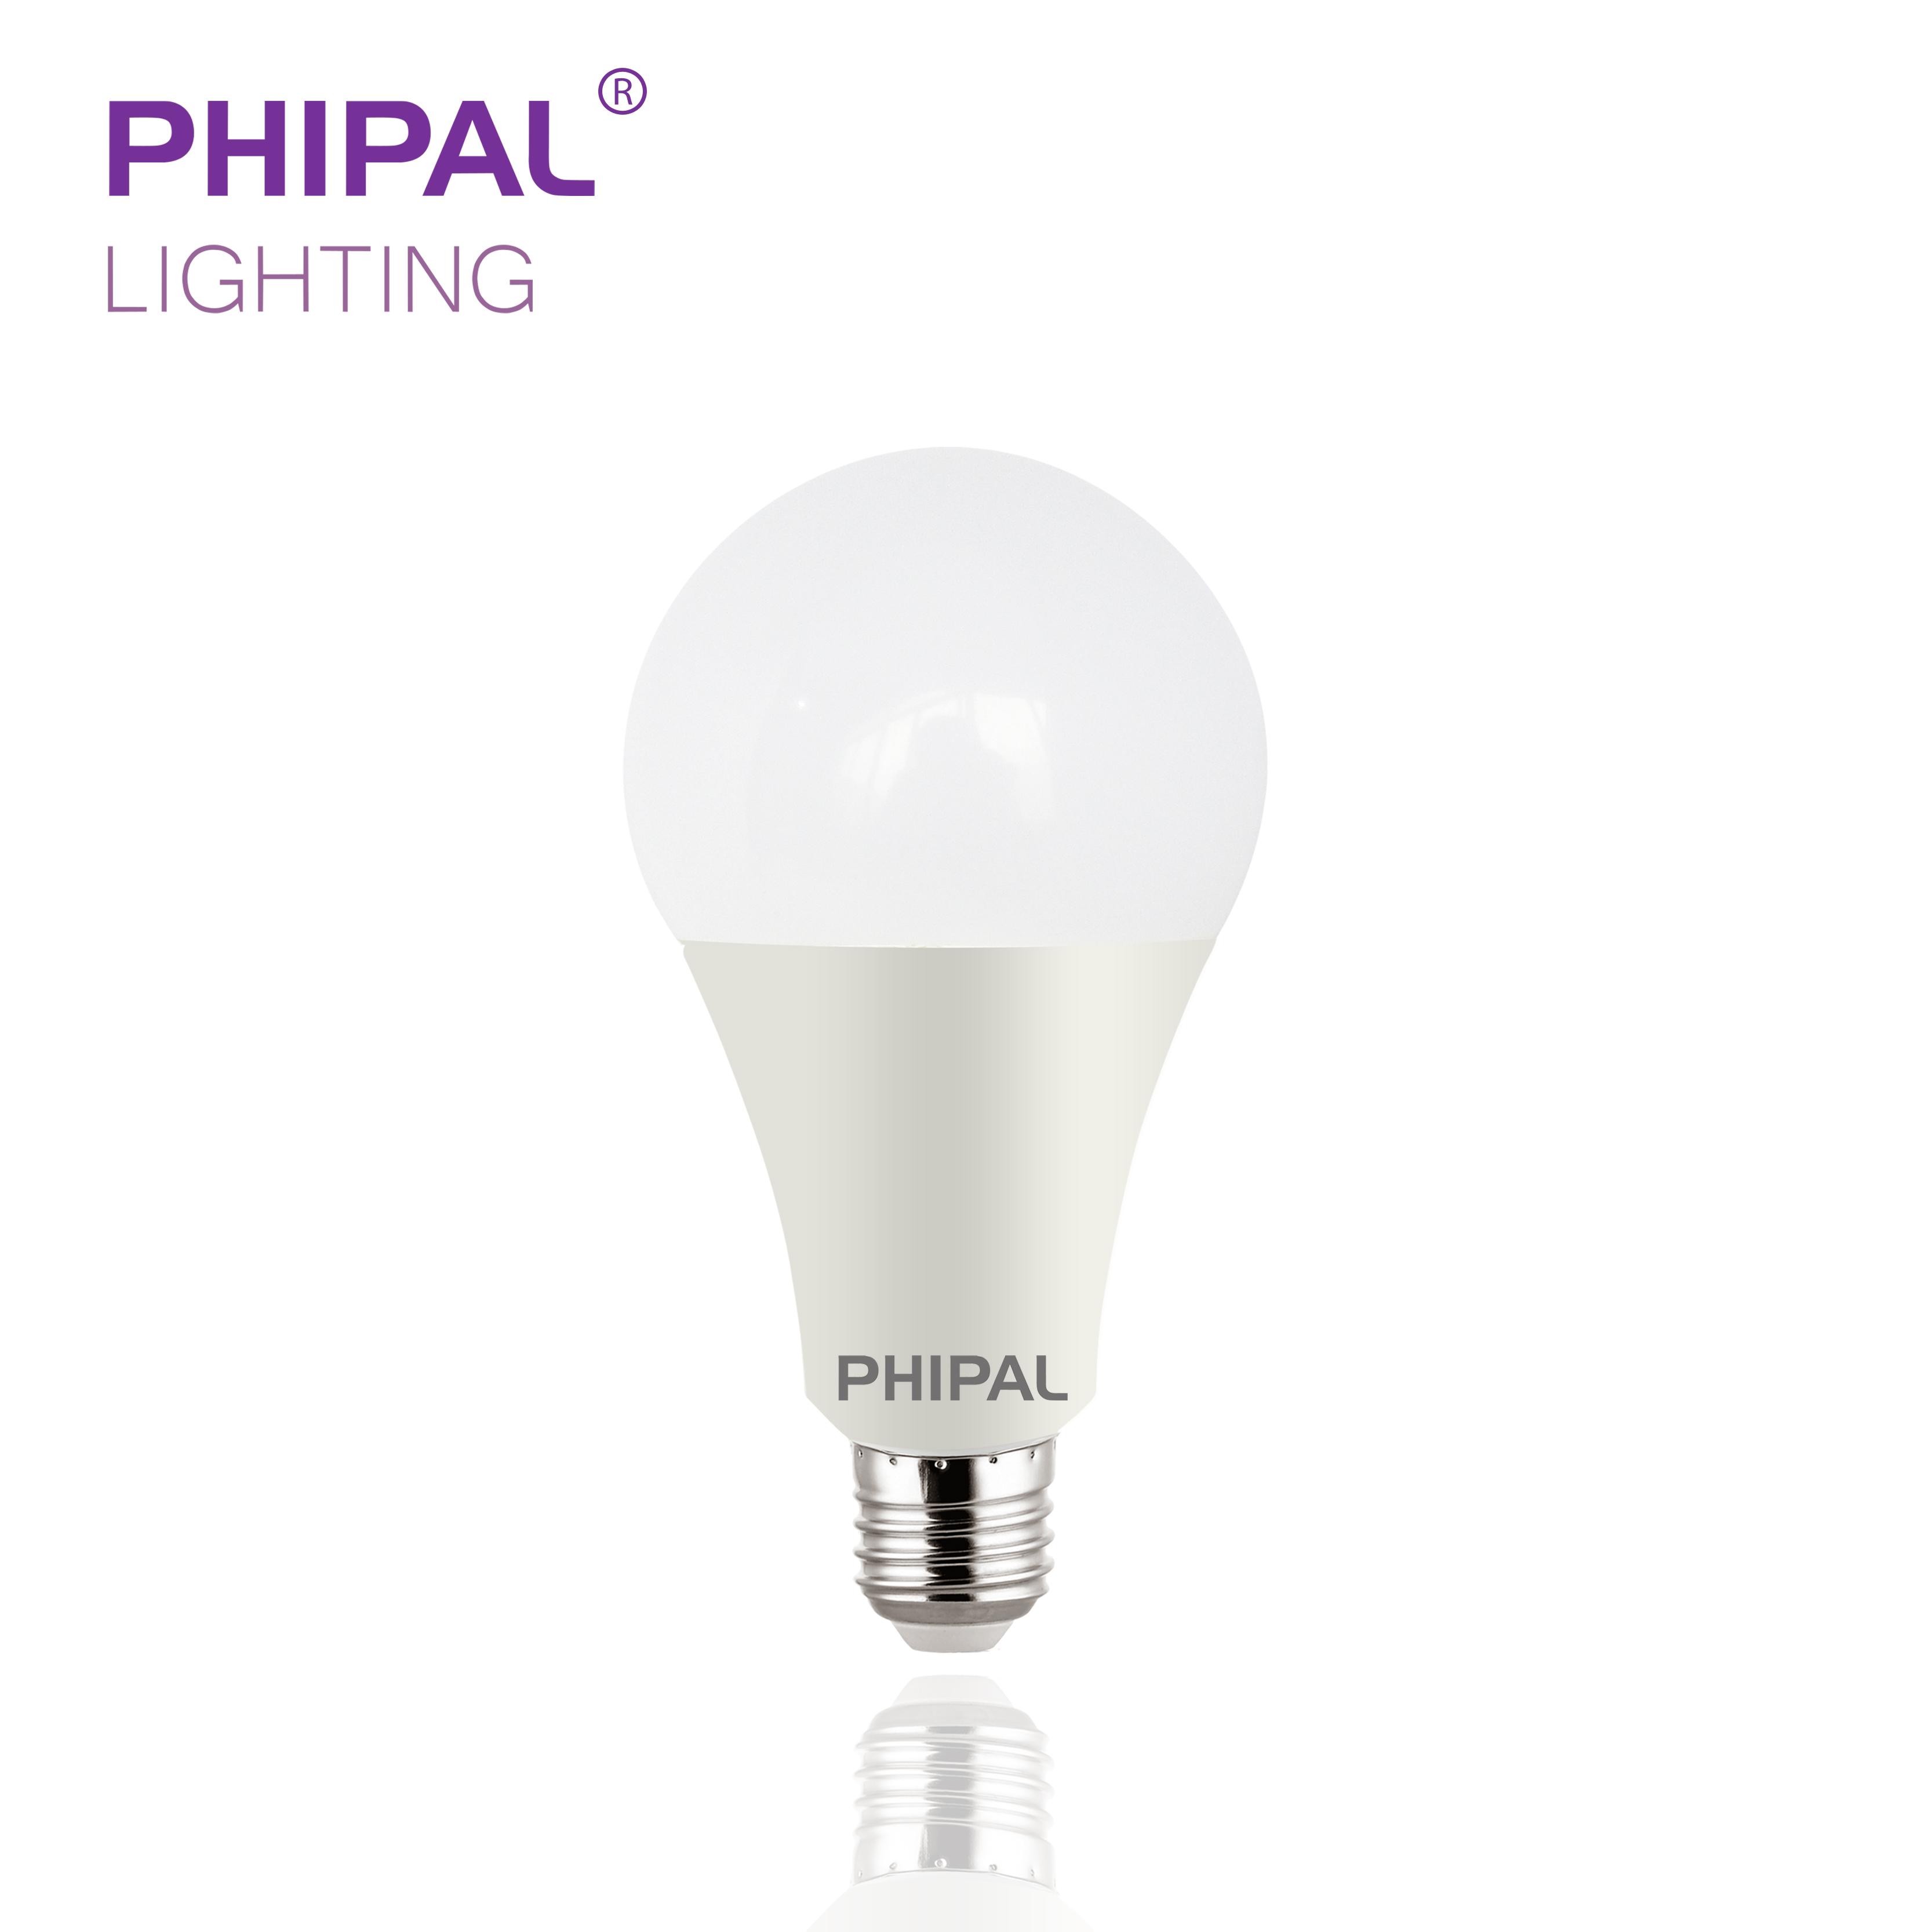 Led Bulb Spare Parts Raw Material Electric Lamp A80 18w Accessories Bulbs -  Buy Led Bulb Spare Parts,Led Lamp Material,Accessories Bulbs Product on